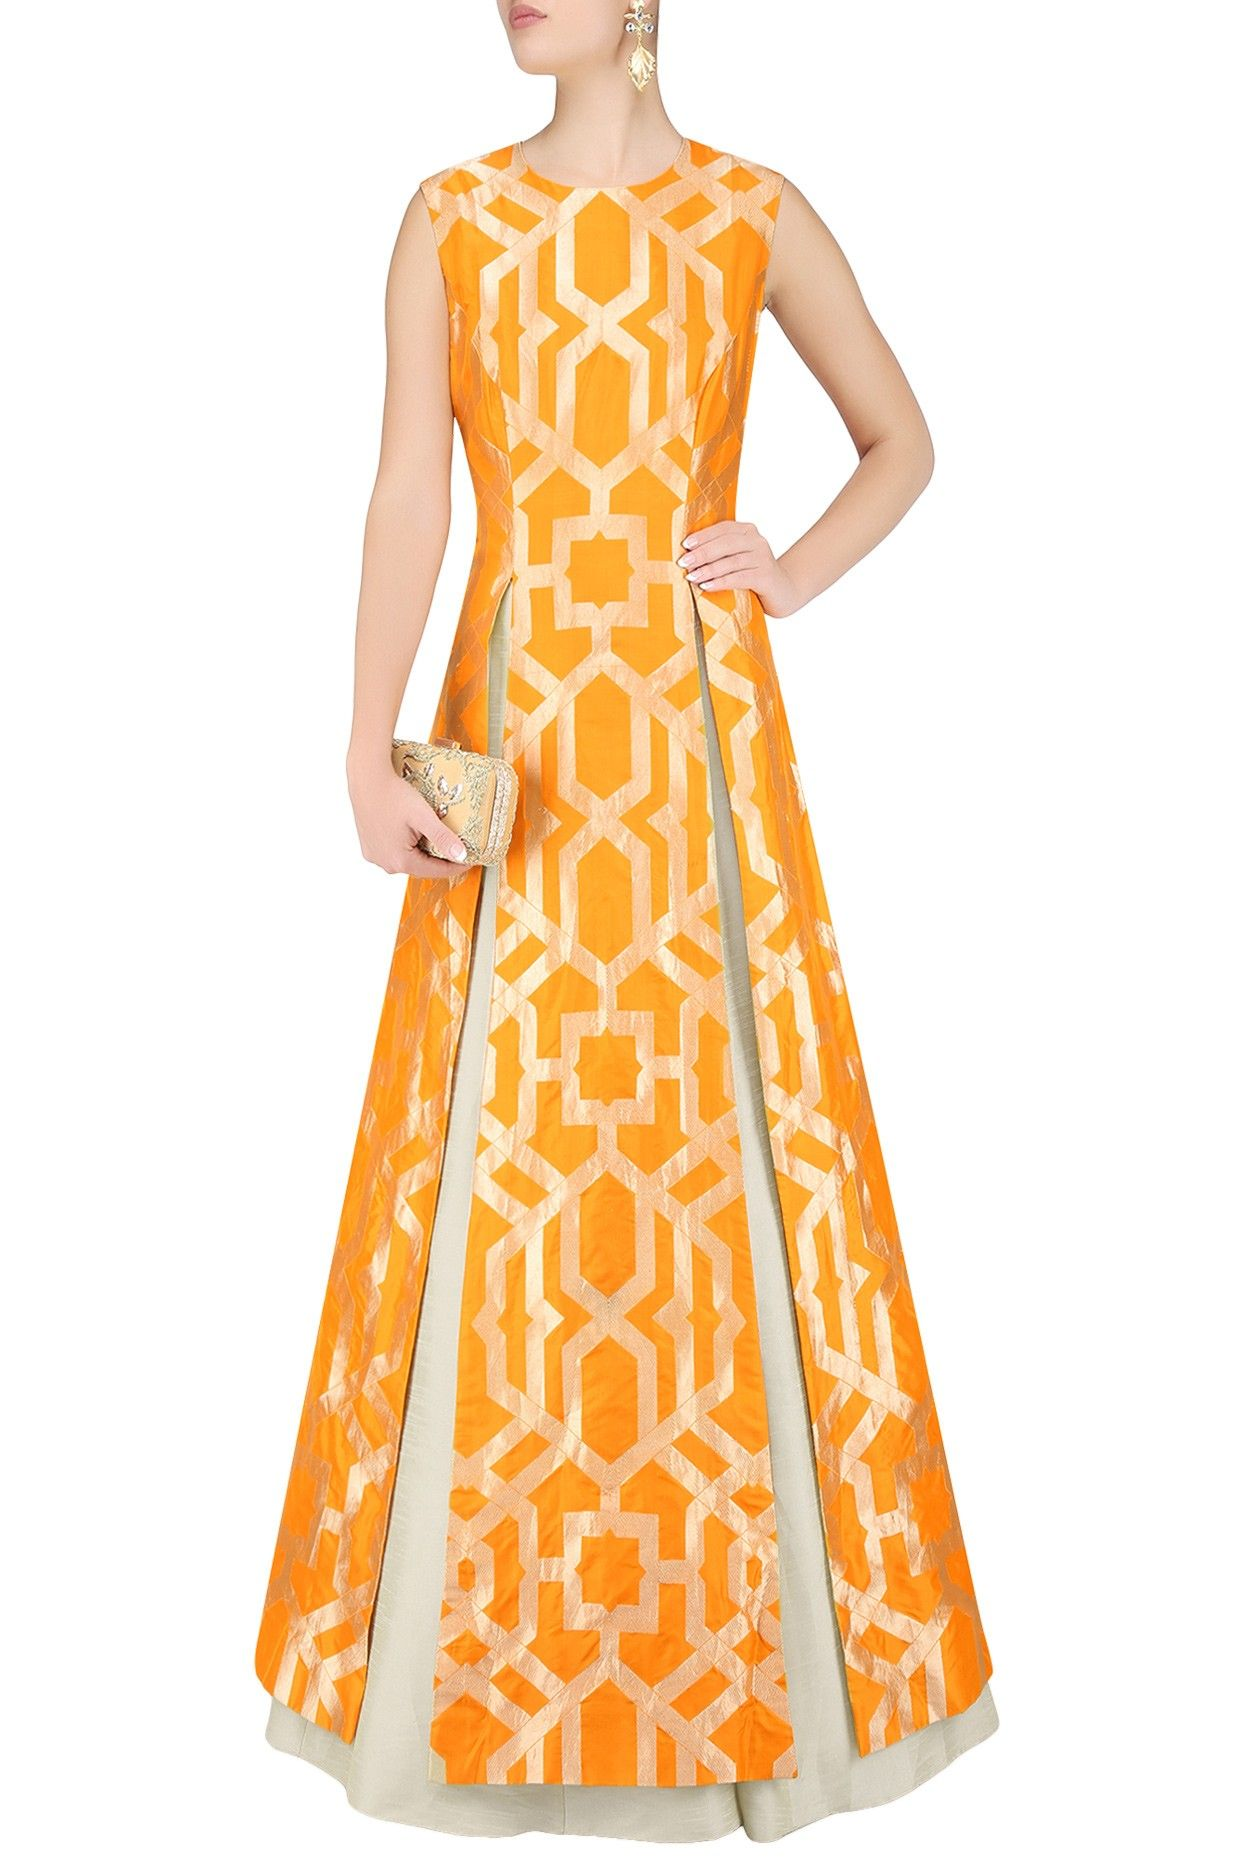 4a4206449cf33a Orange thick line brocade high slit kurta and beige lehenga set available  only at Pernia's Pop Up Shop.